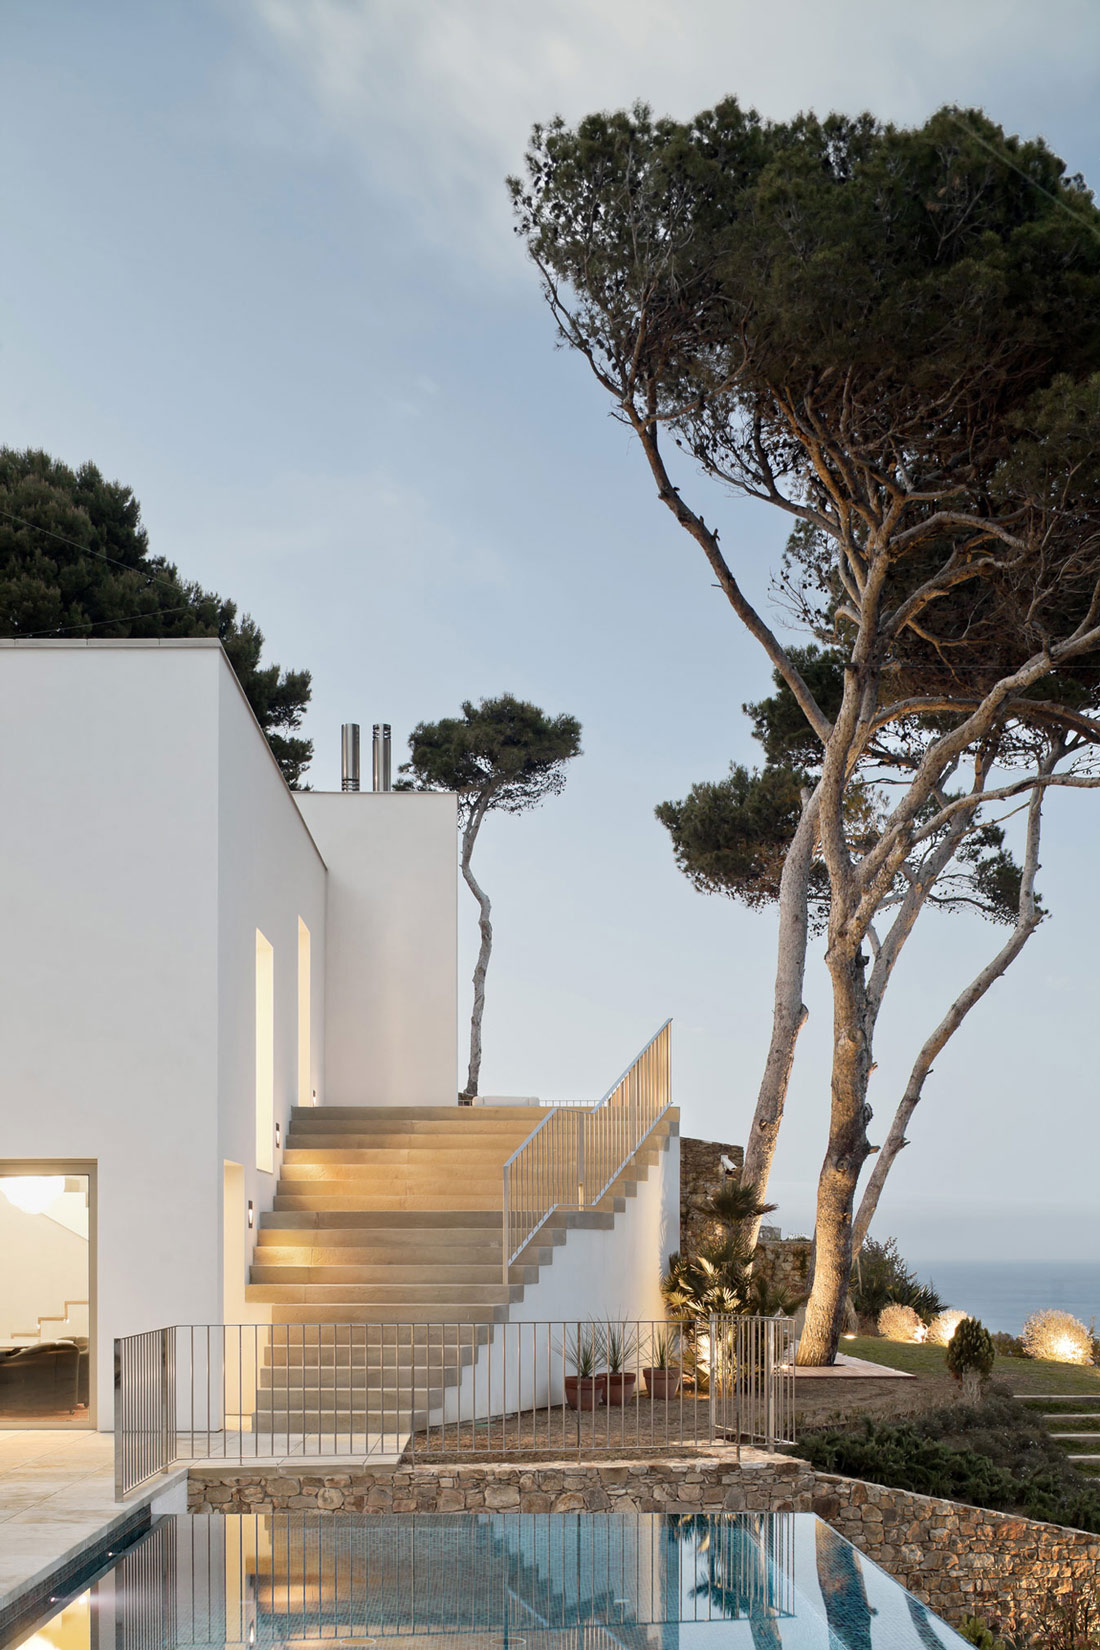 Pool, Stairs, Lighting, Waterfront House in Costa Brava, Spain